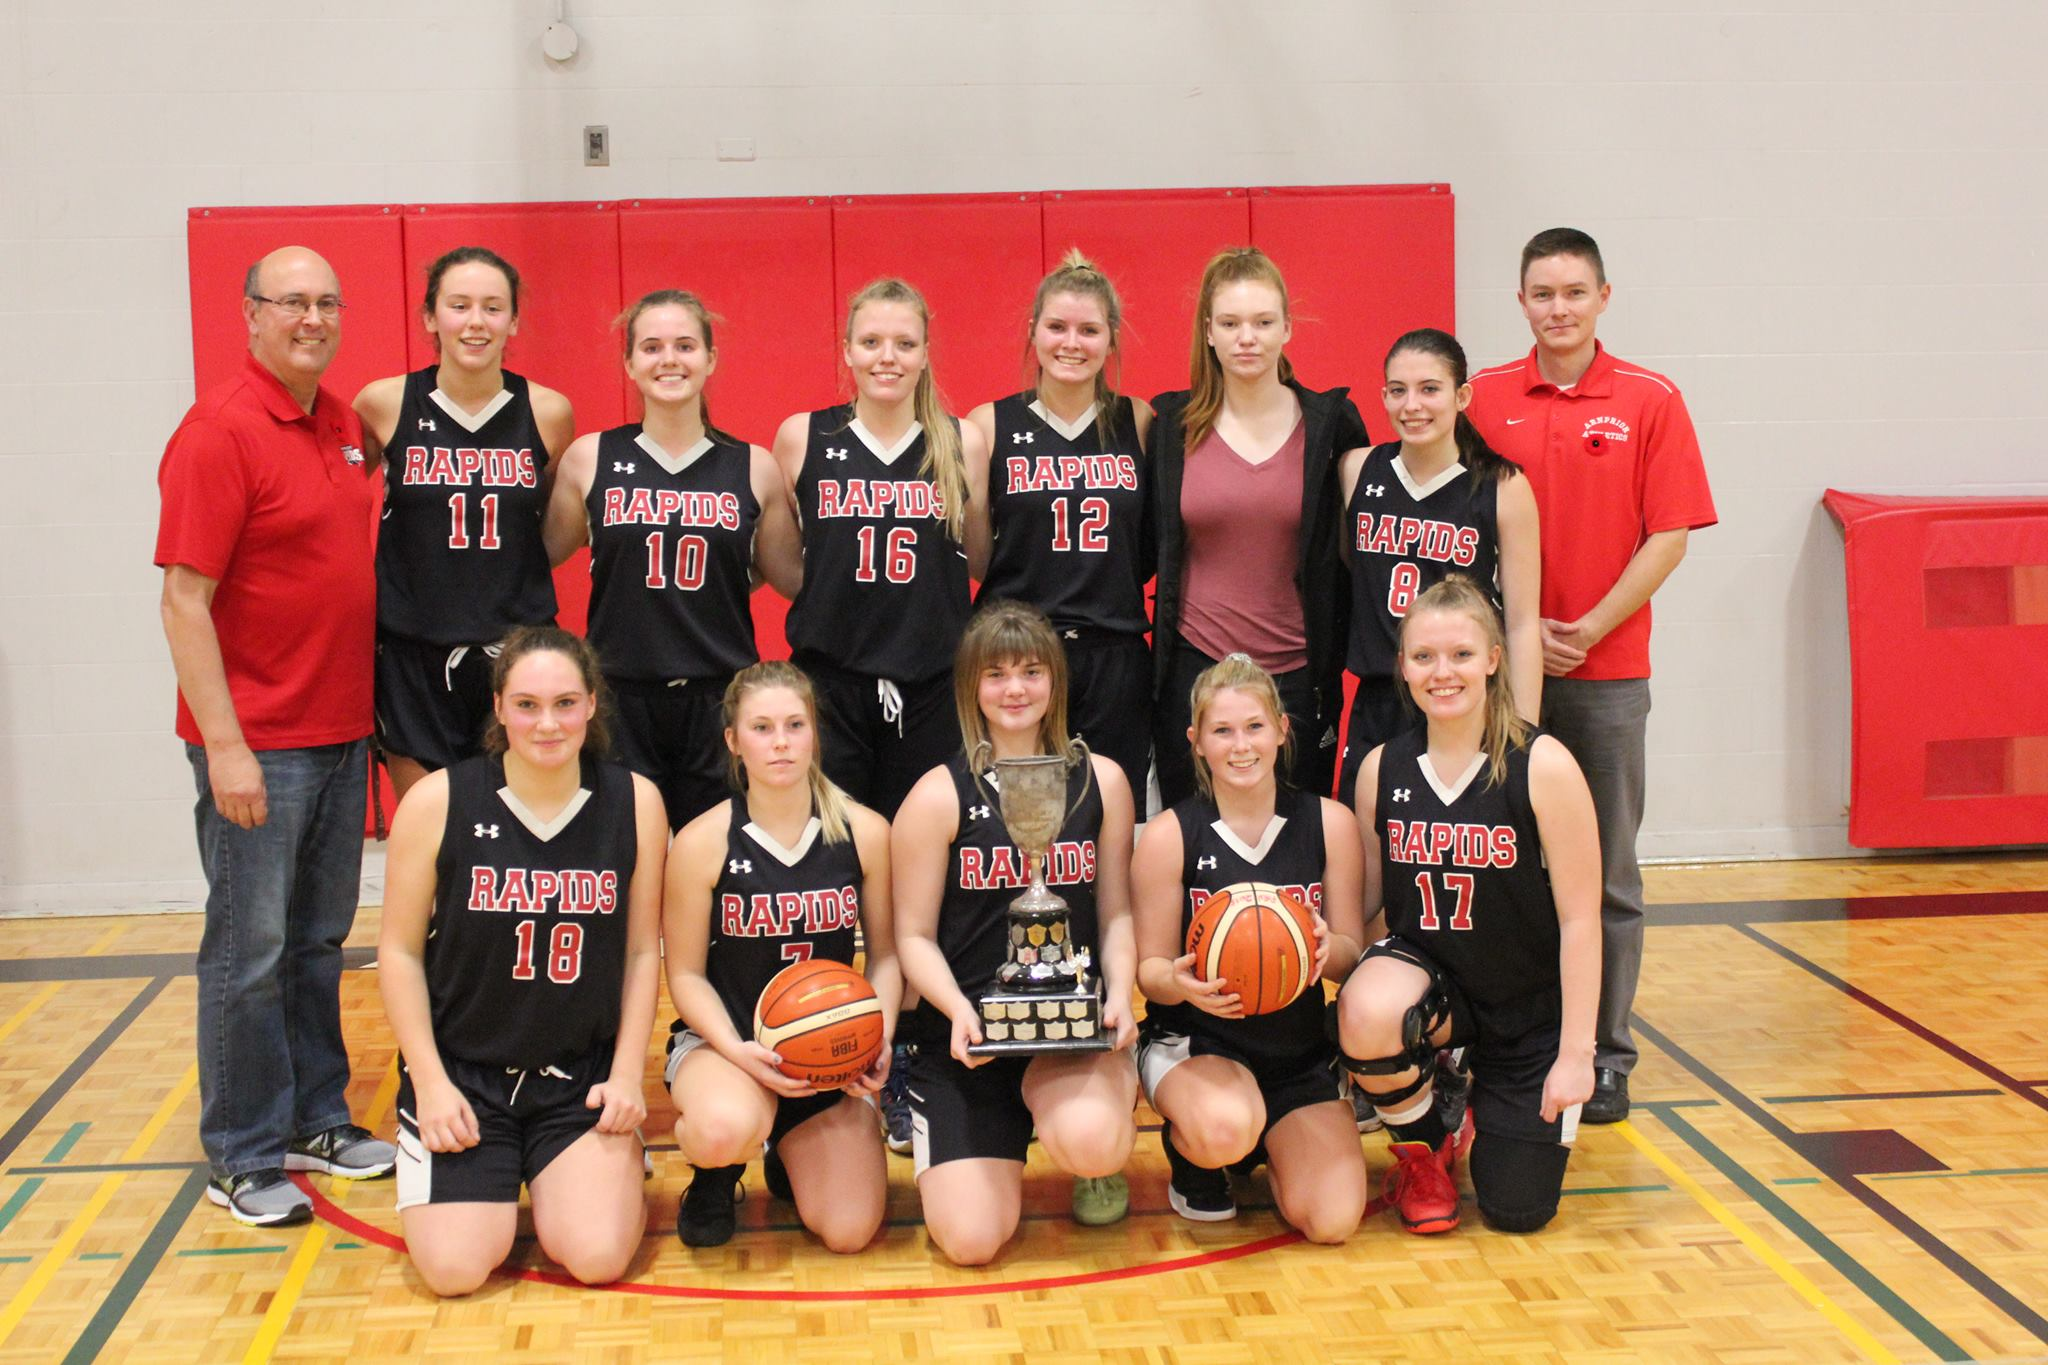 The ADHS Senior Girls basketball team went undefeated this season